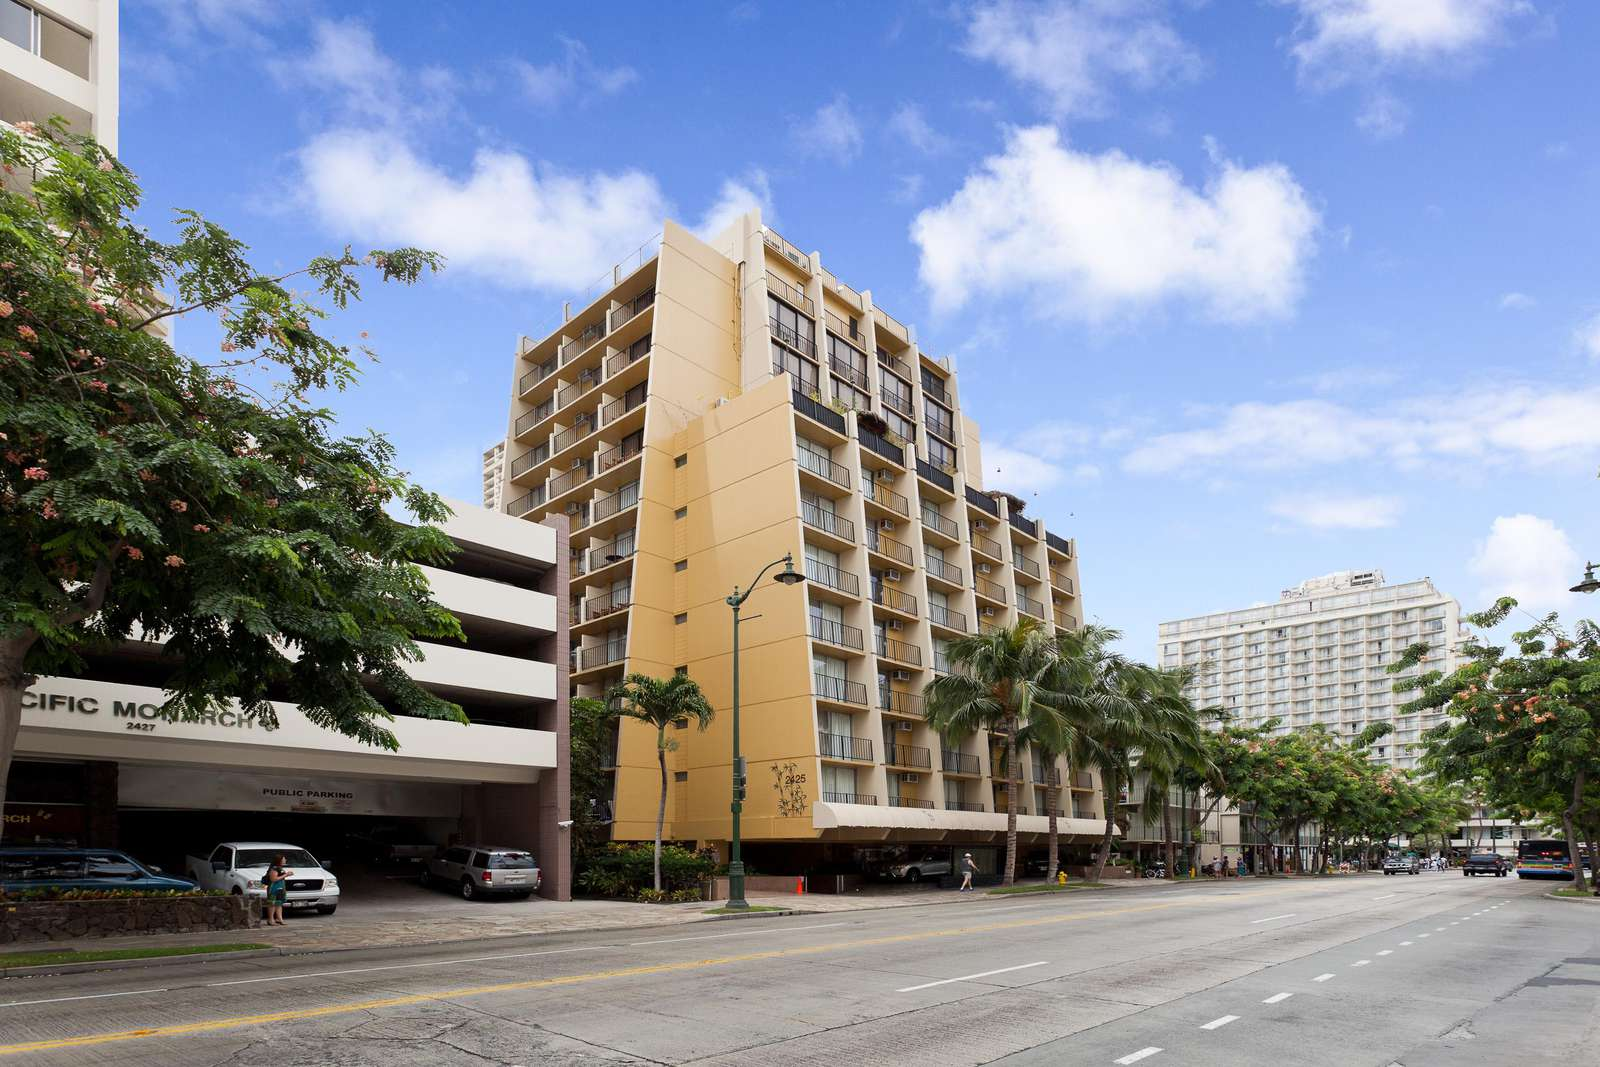 Centrally located in the Heart of Waikiki